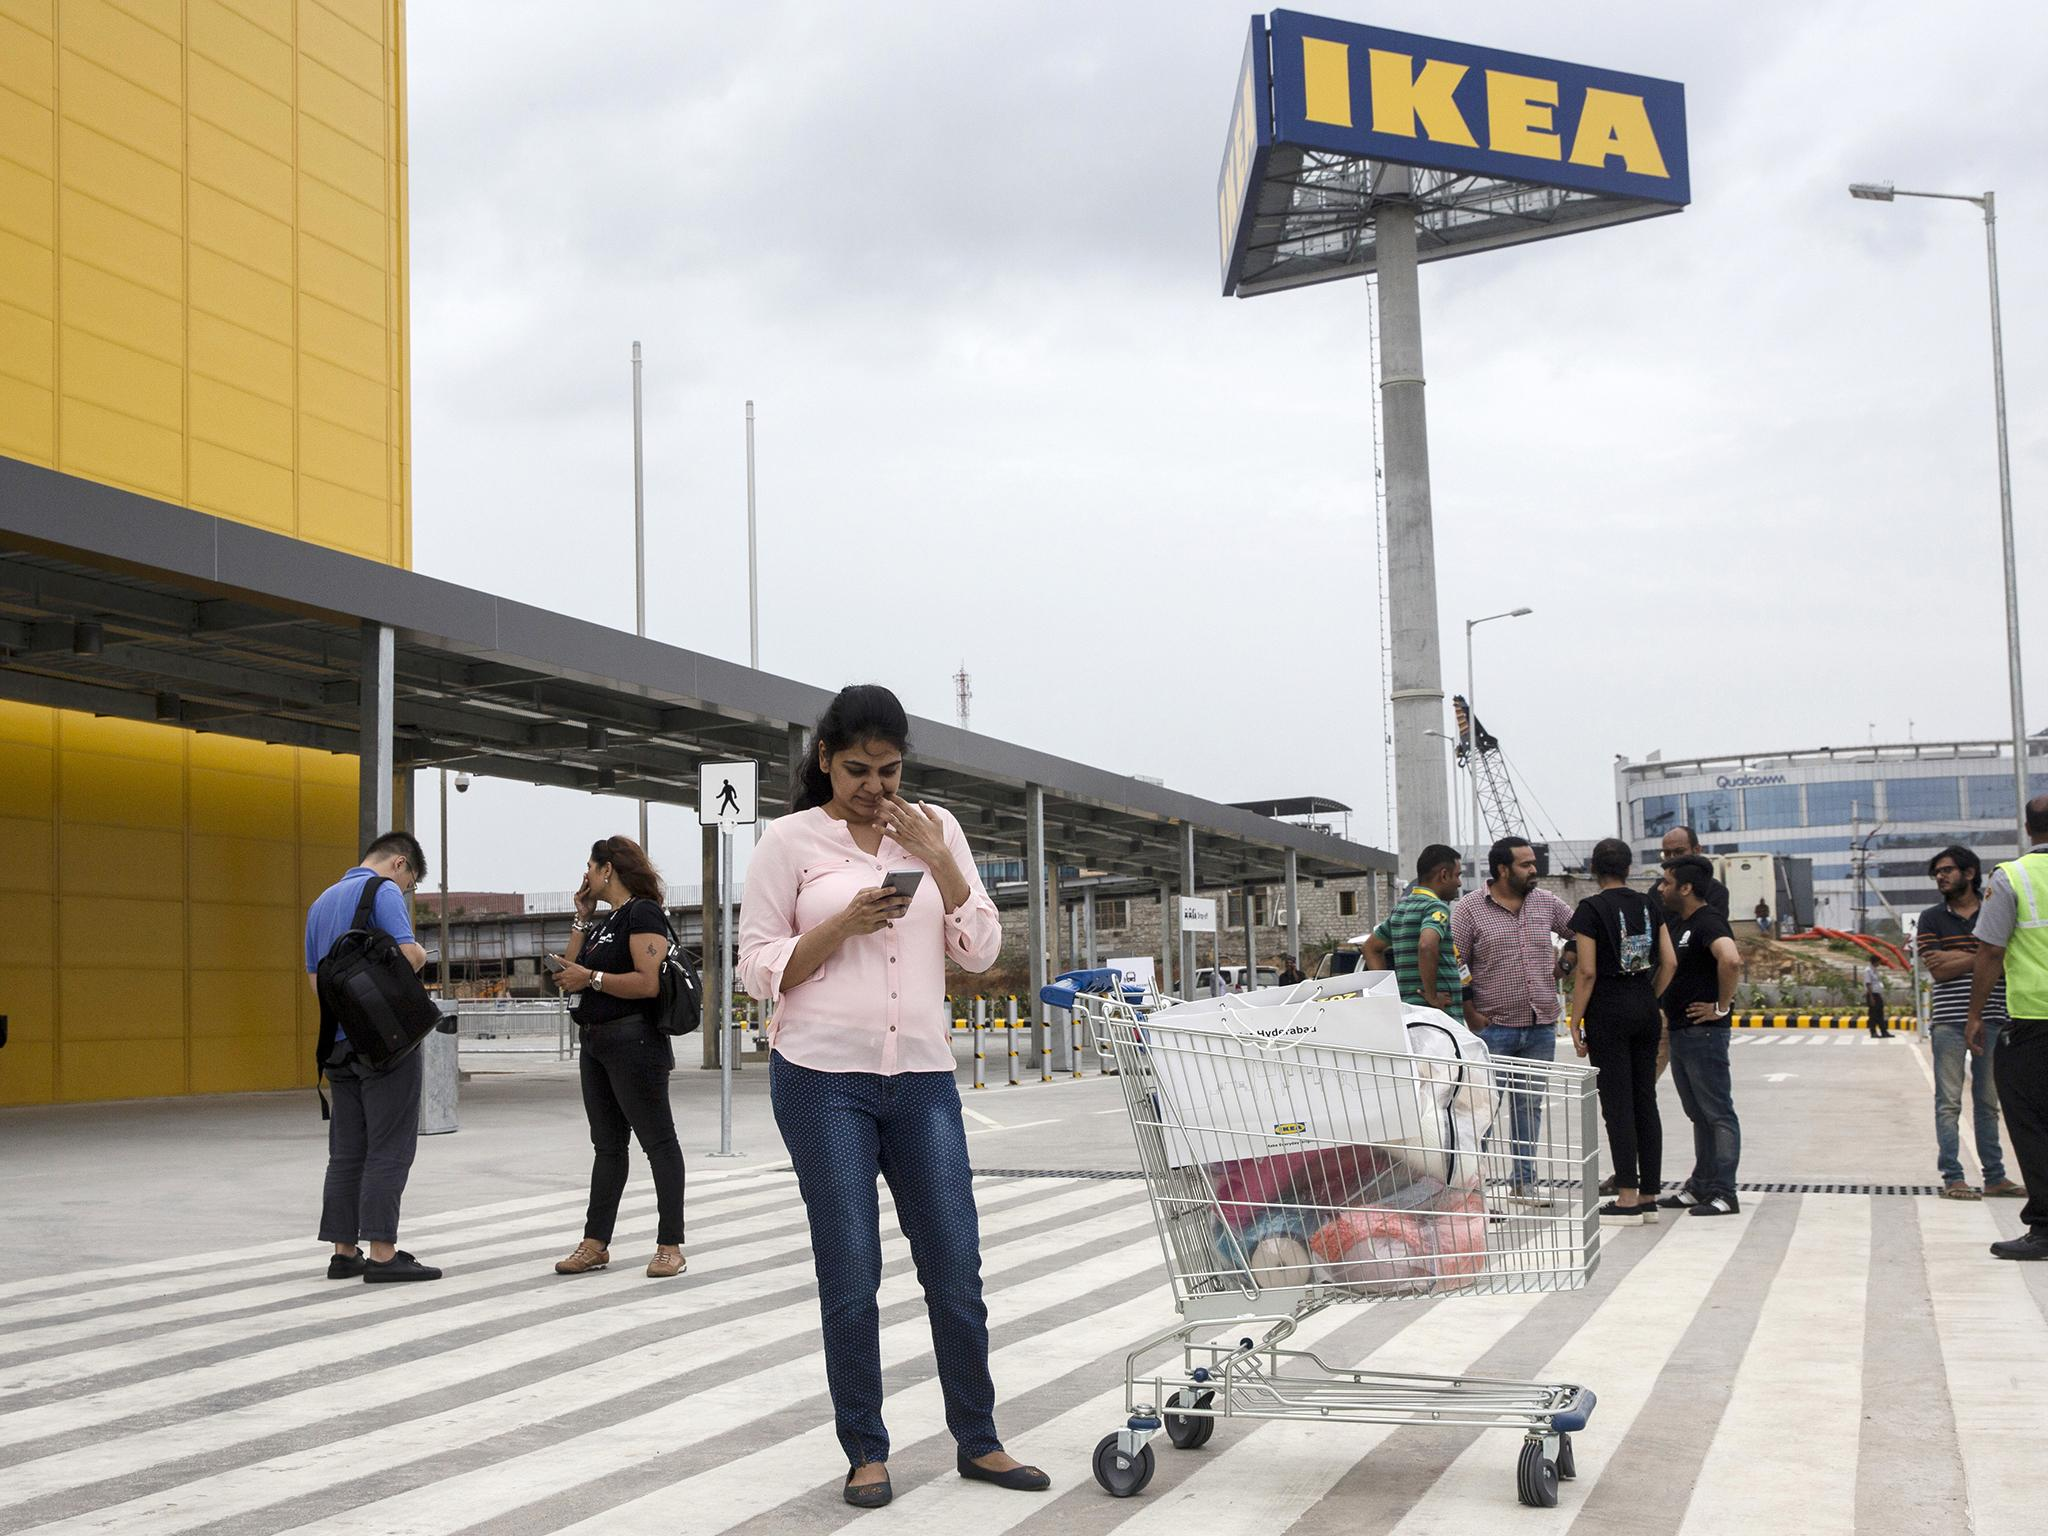 IKEA - latest news, breaking stories and comment - The Independent